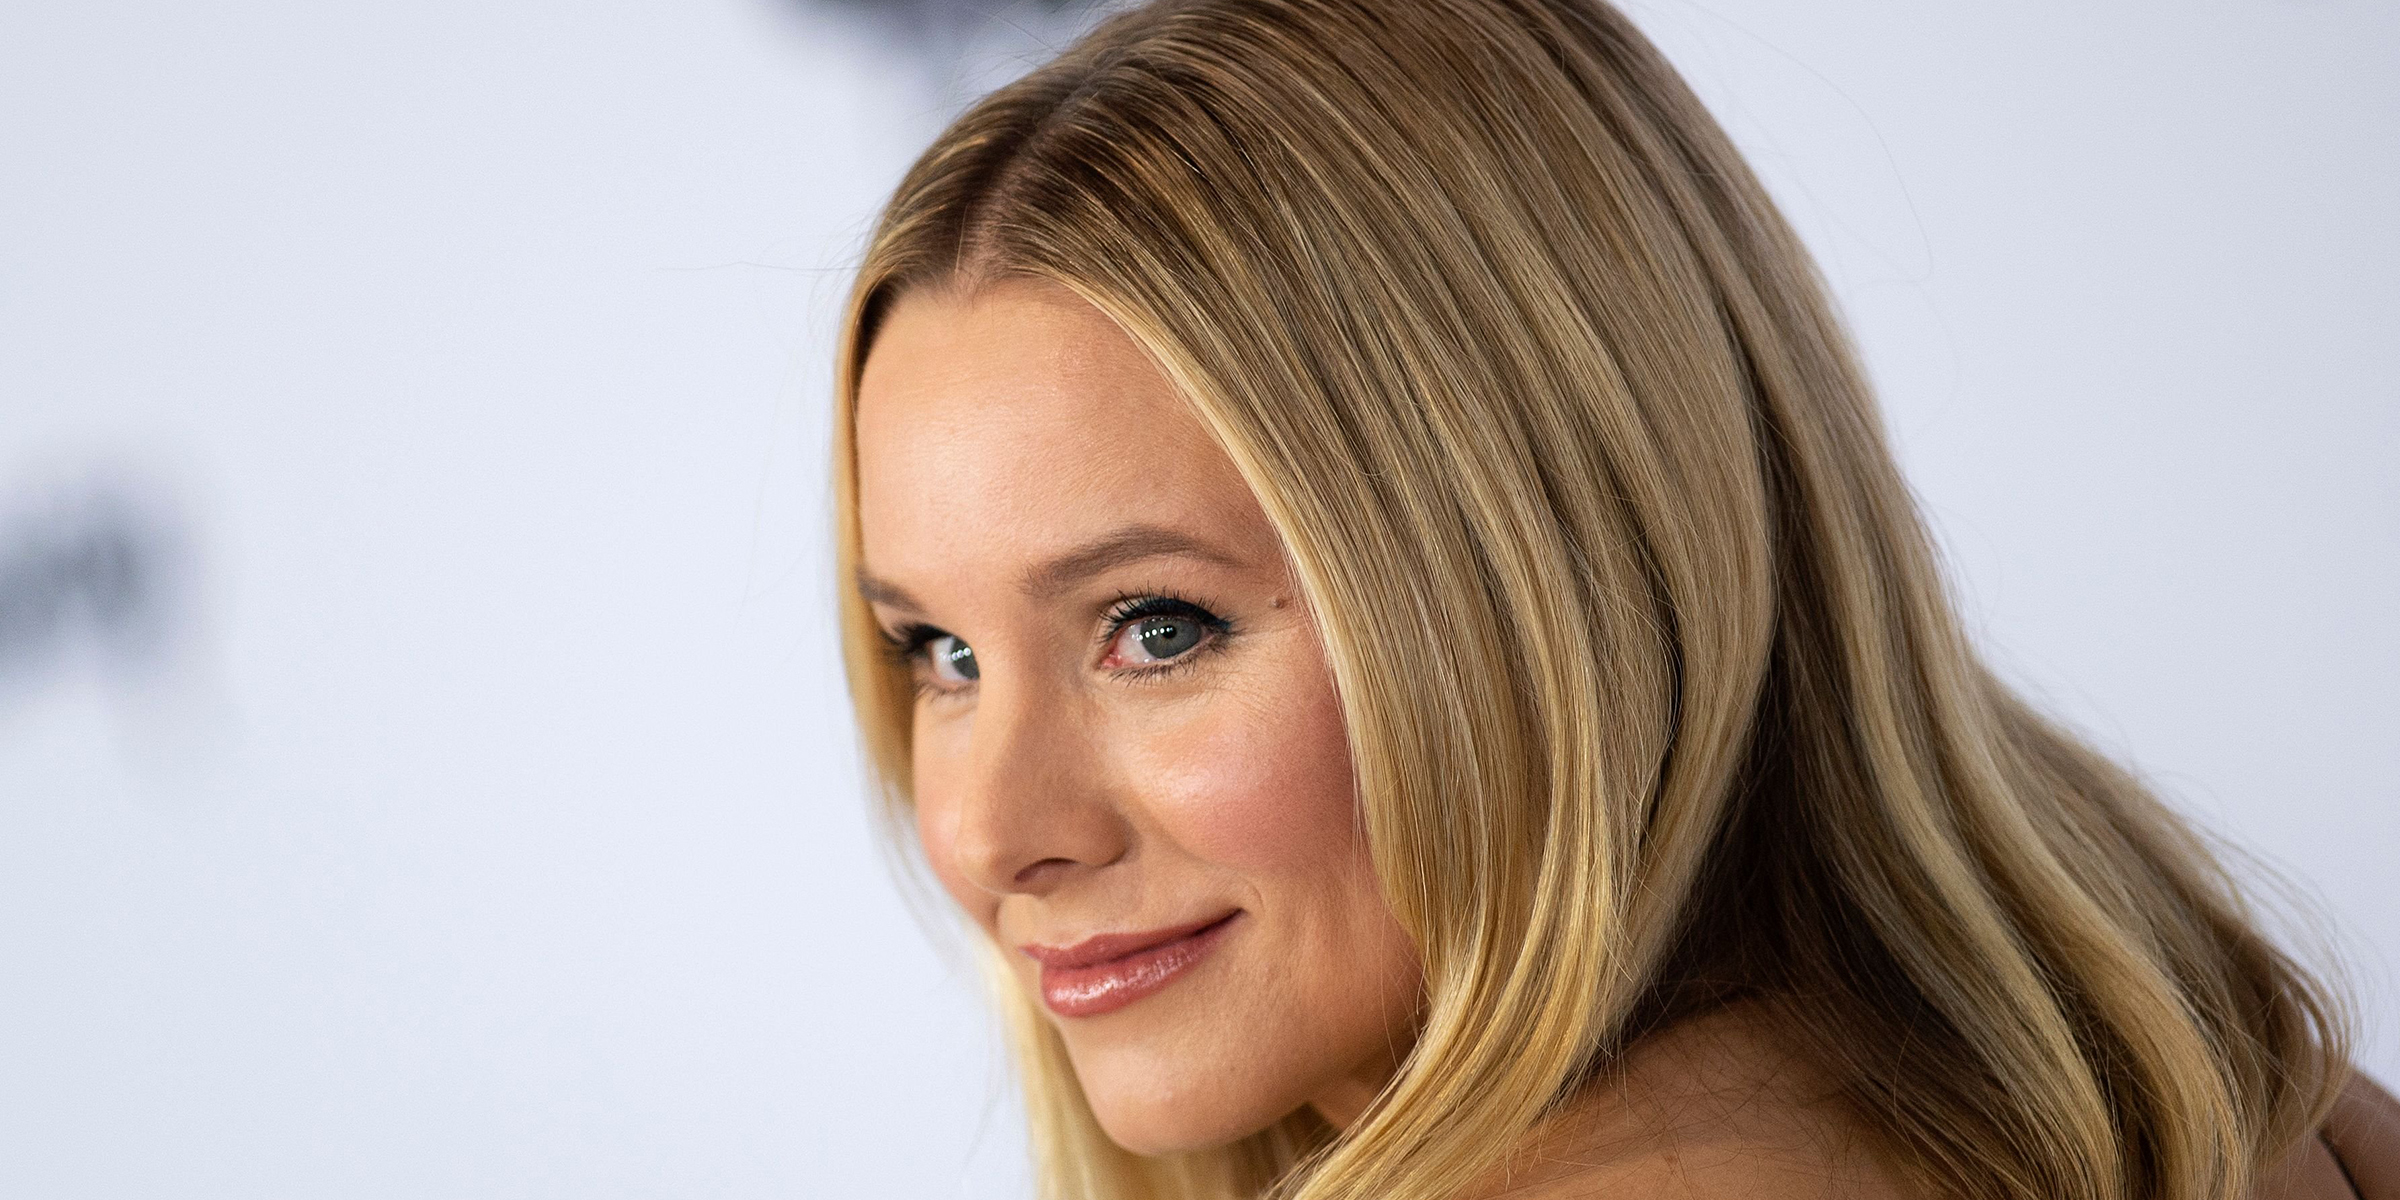 Kristen Bell shows off her chic haircut in stunning selfie